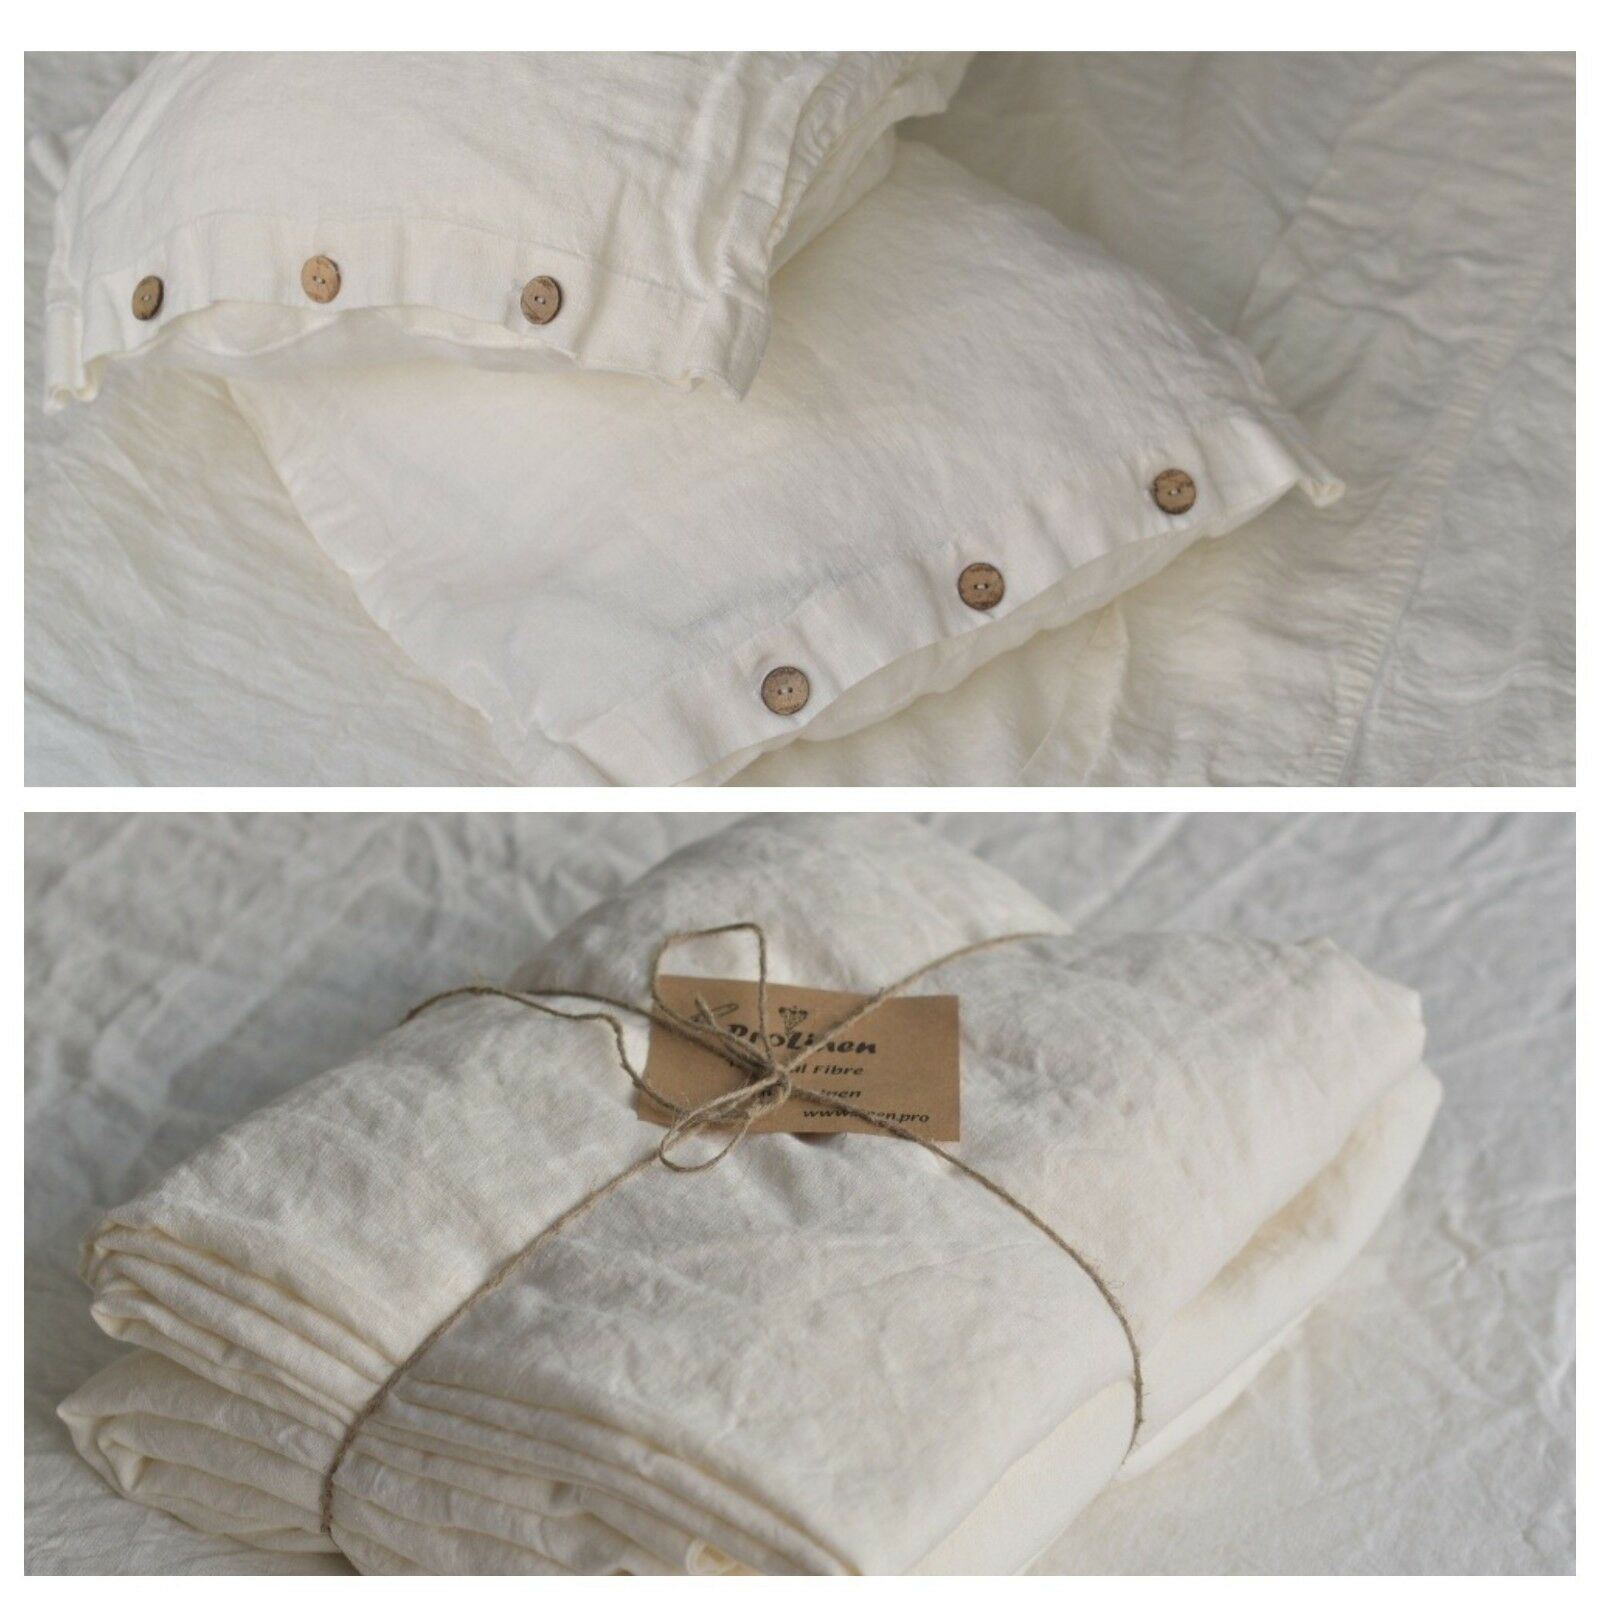 Linen SHEET SET of 4pc Stone Washed sheets and two pillowcases BUTTON Weiß